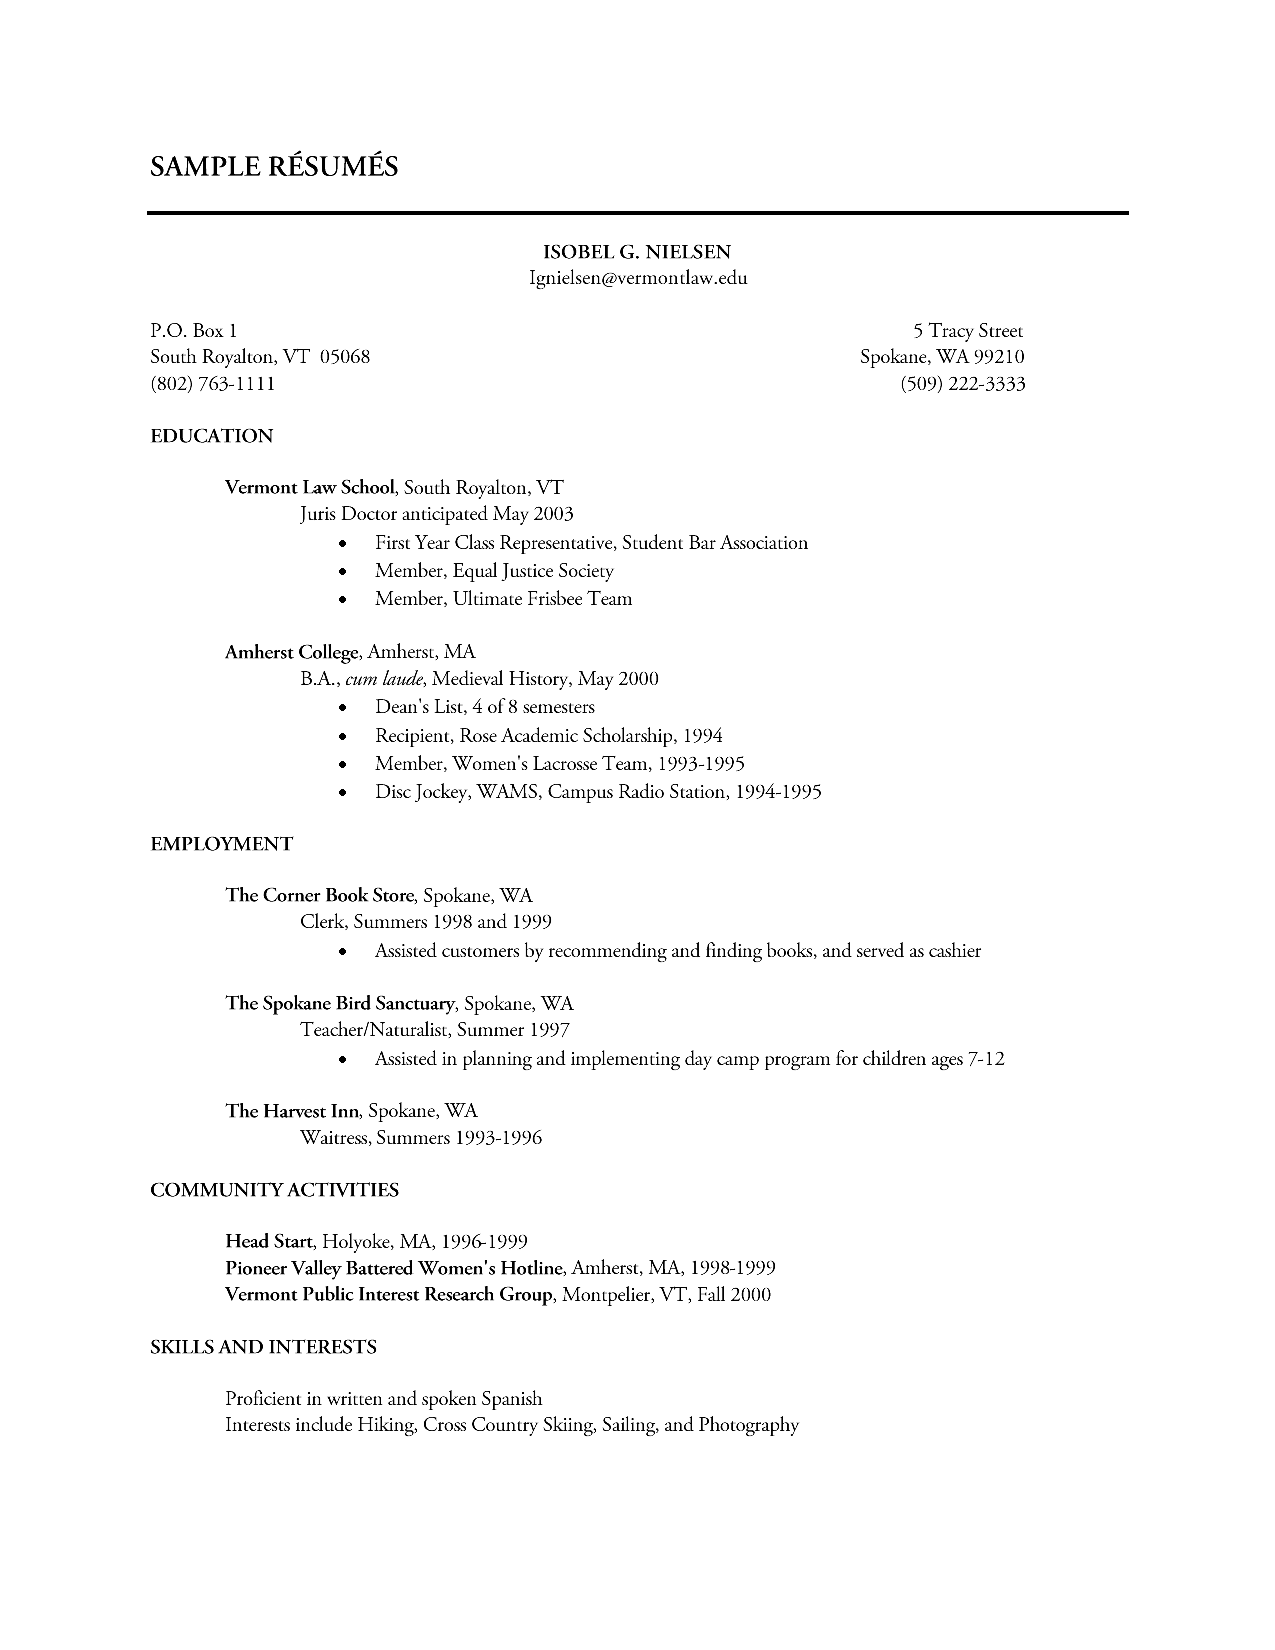 100 virginia tech resume virginia tech ncr vtncr twitter